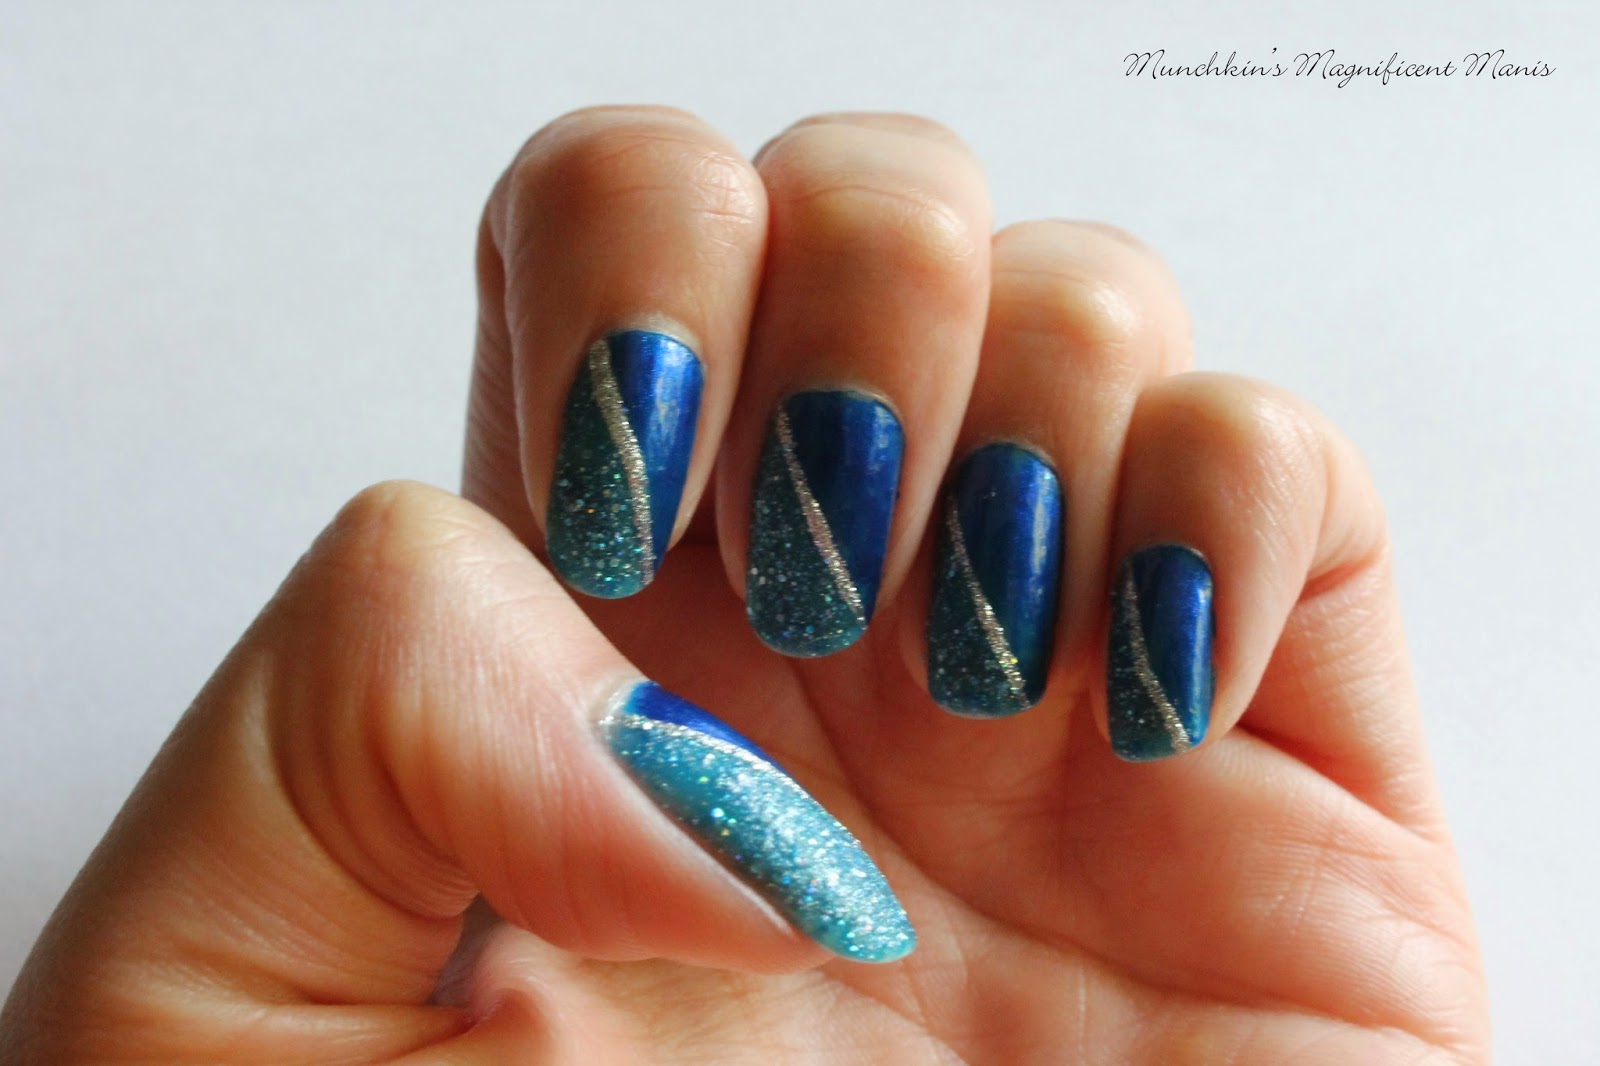 Munchkin\'s Magnificent Manis: October 2014